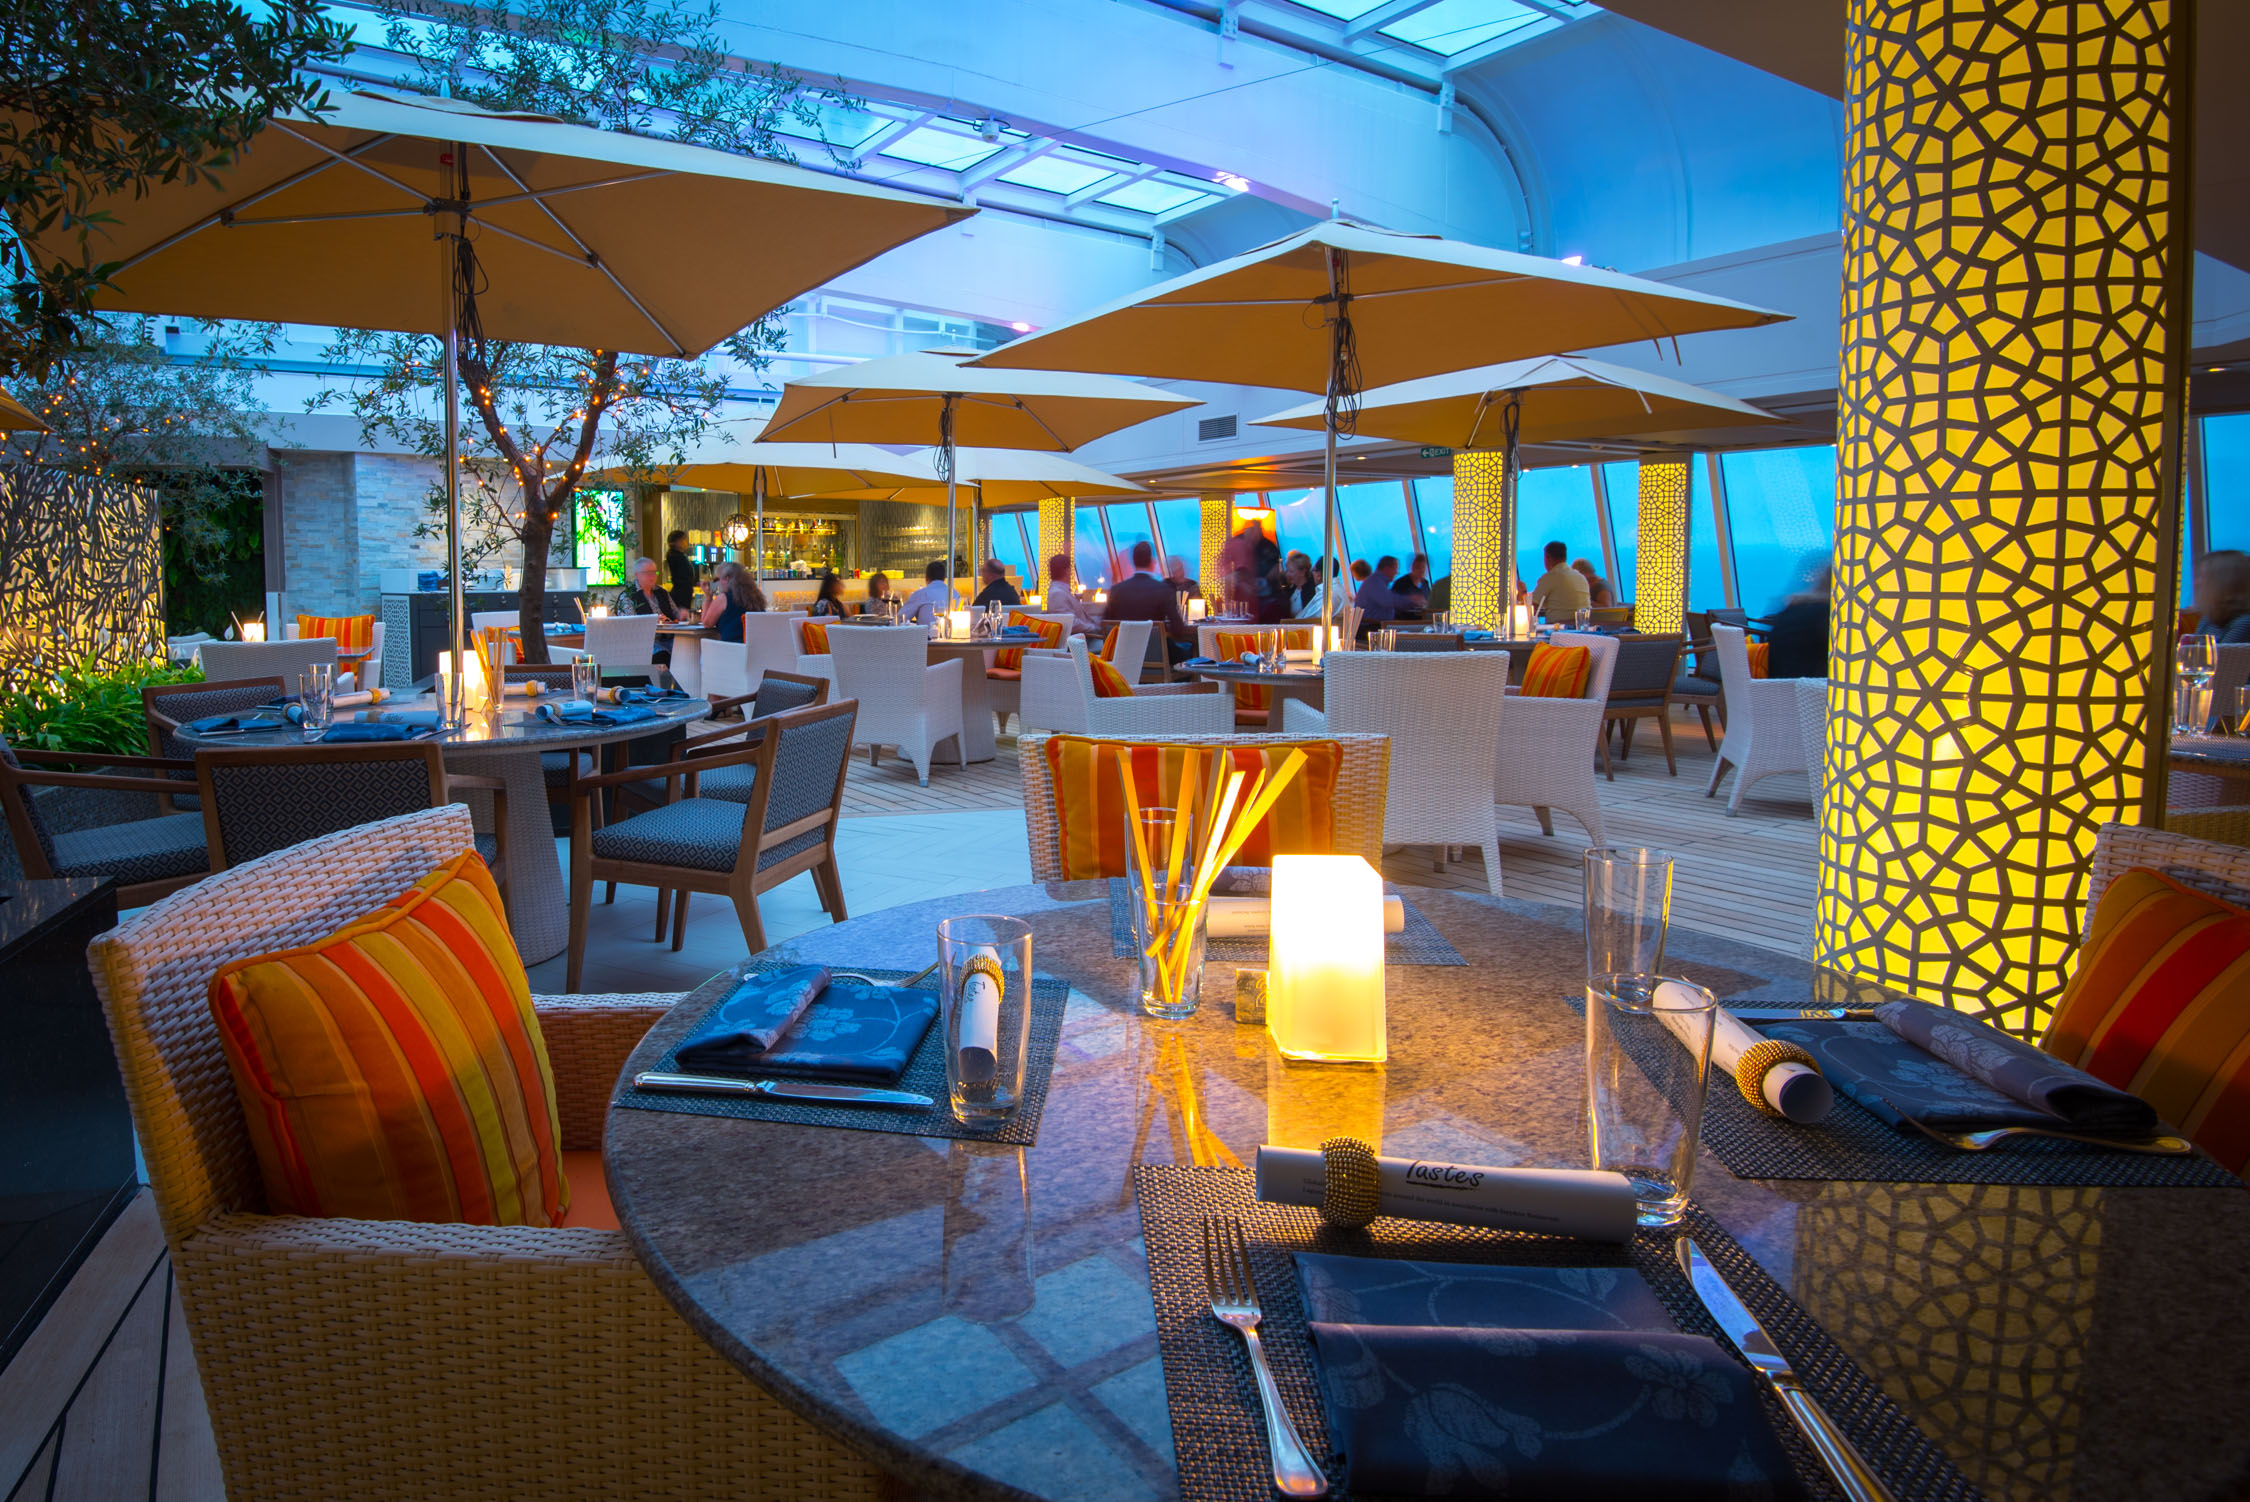 One of the common area where the Trident Grill, Tastes and Ben & Jerry's is, aboard Crystal Cruises